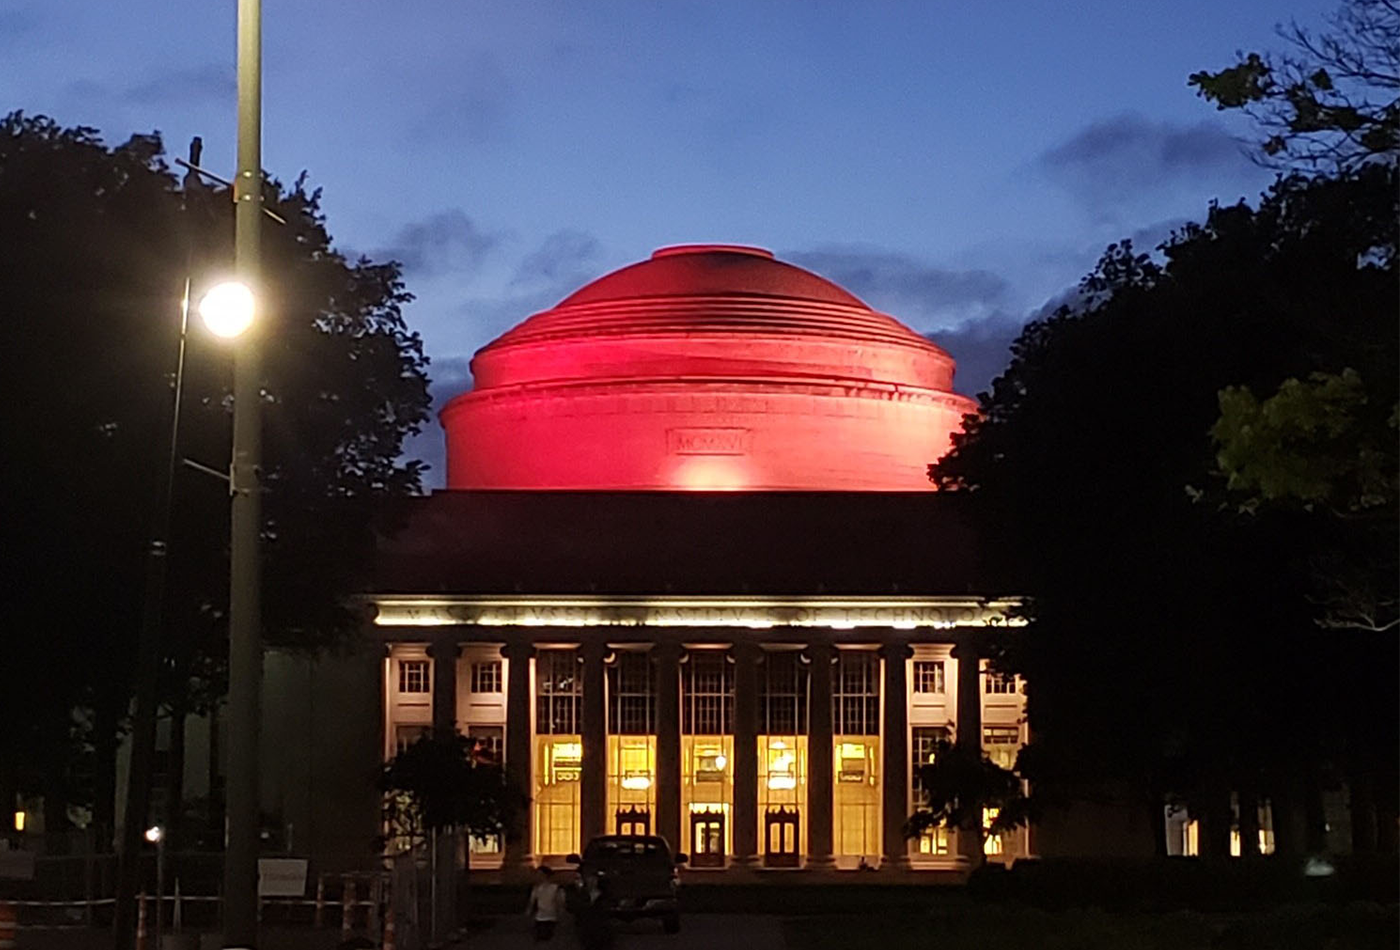 The MIT Dome lit up red at dusk.